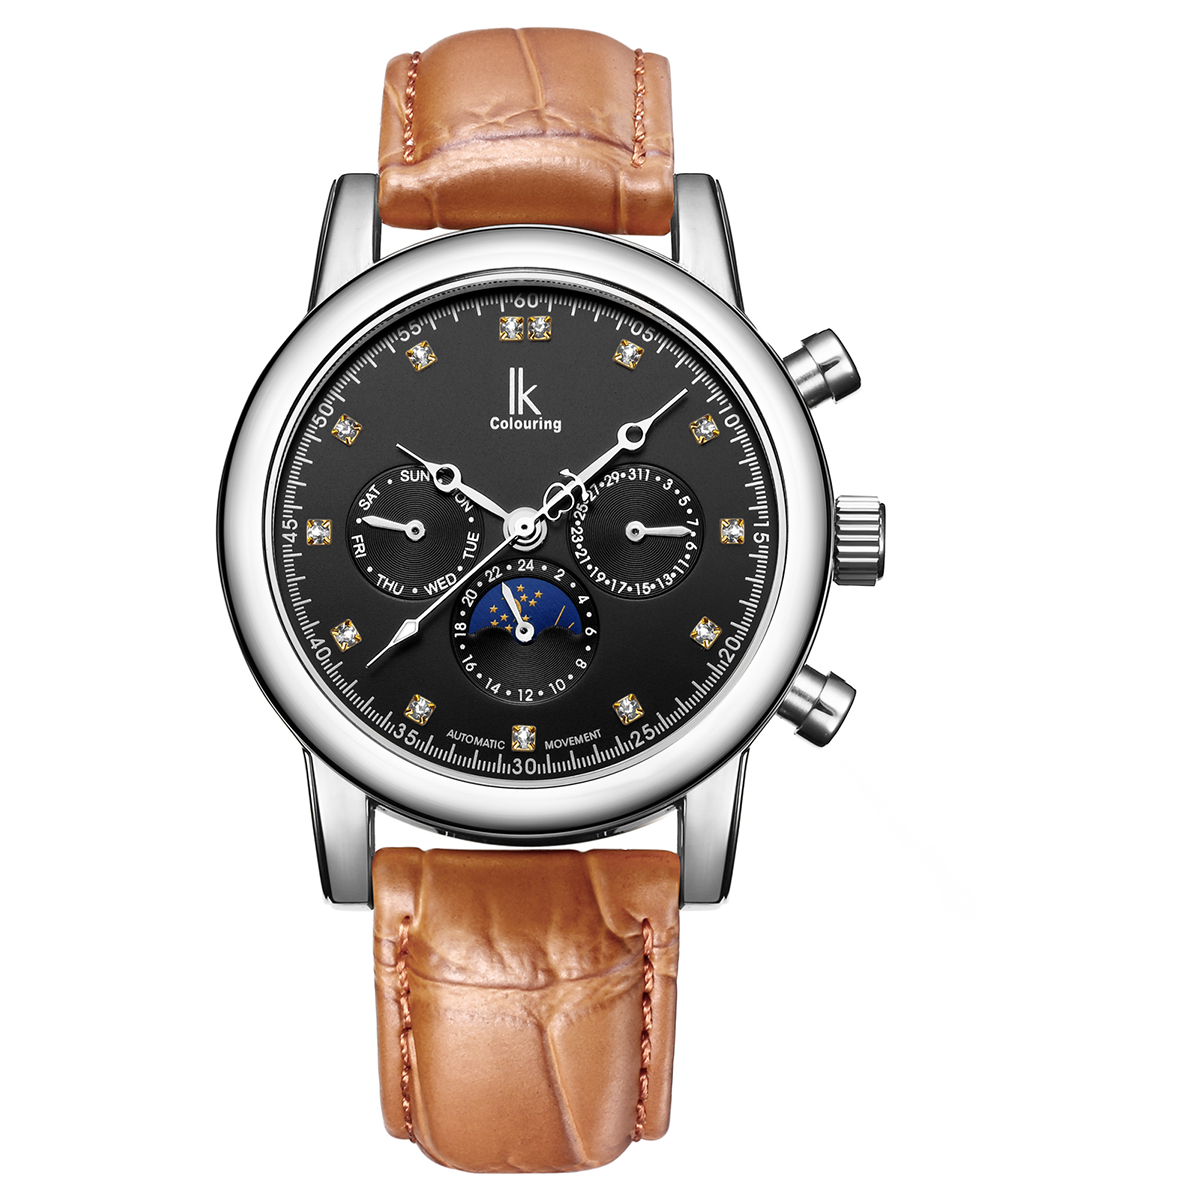 ФОТО IK colouring Auto Date Automatic Mechanical Watches Genuine leather Strap Moon Phase Business Gold Case Wristwatch Luxury